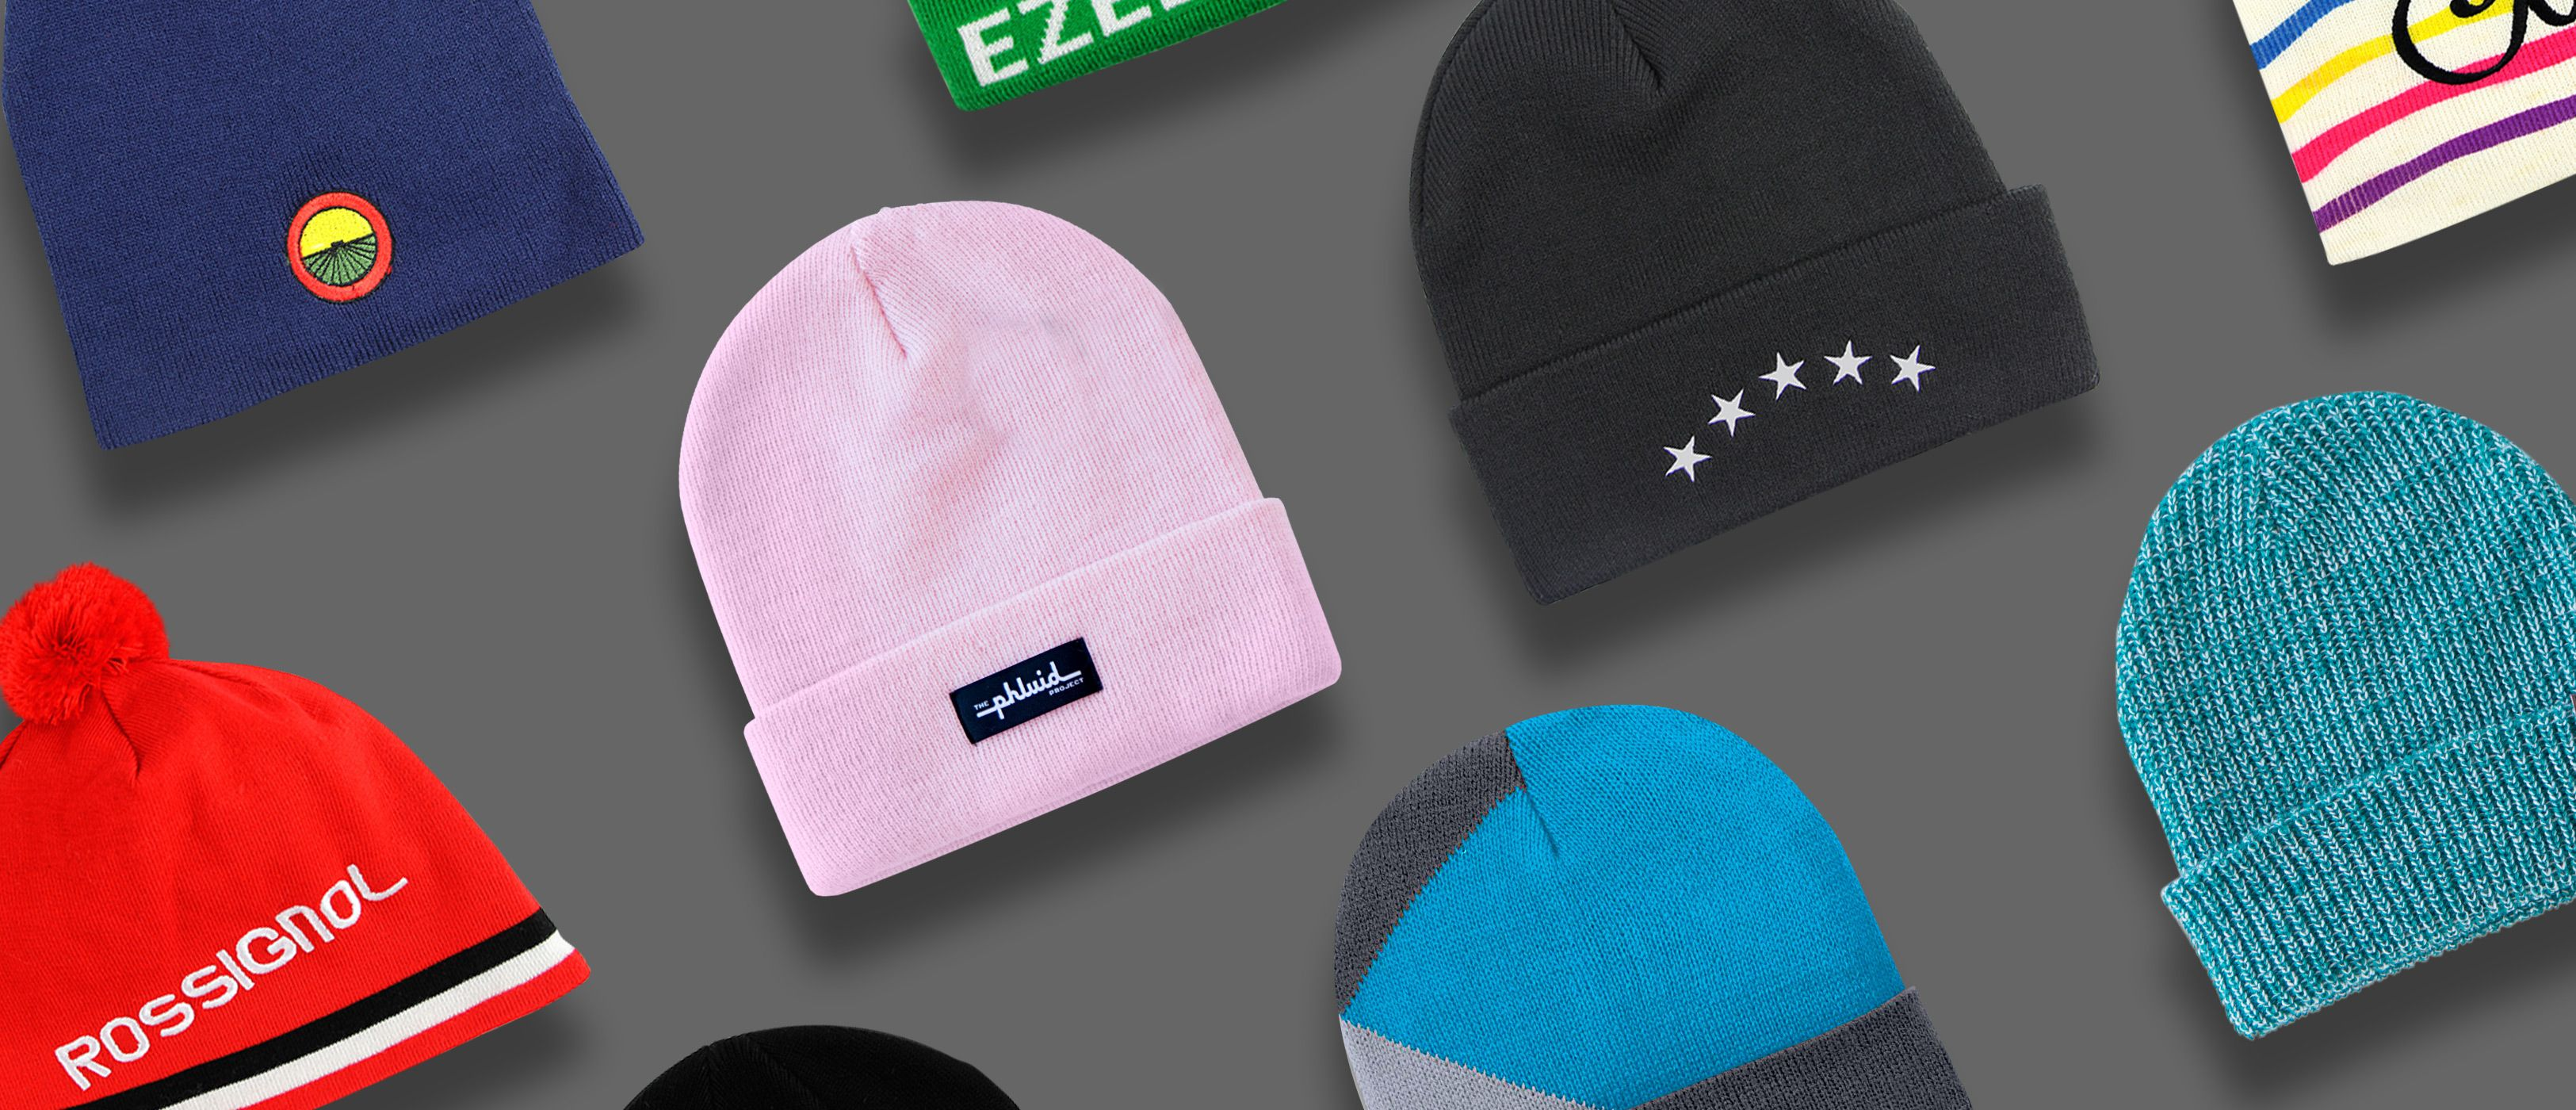 Custom Beanies - Make Your Own Beanies | thestudio.com | Beanie, Custom,  Baseball hats